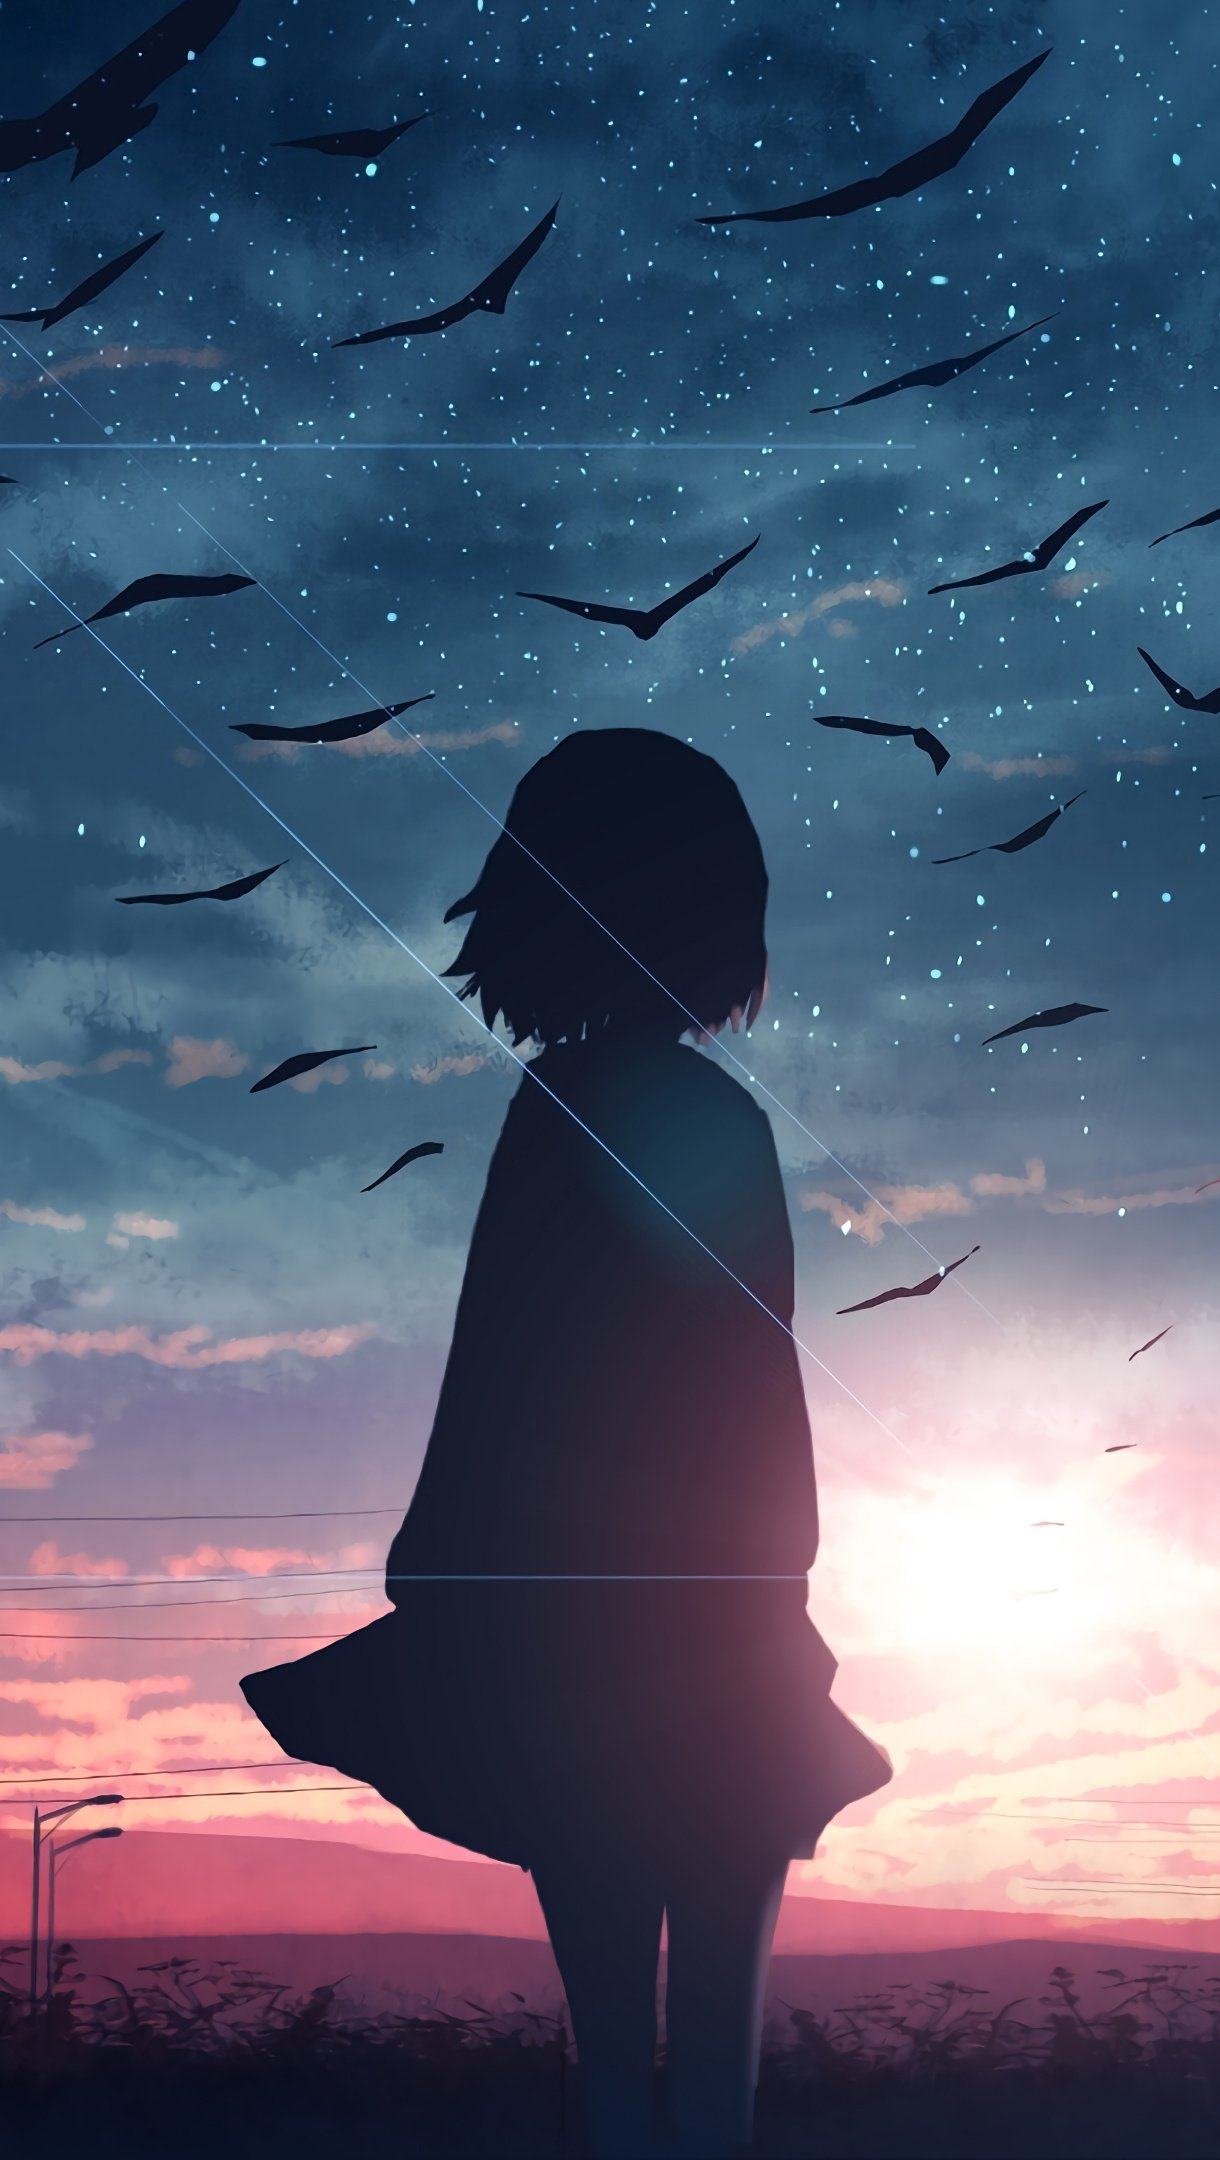 Wallpaper Sunrise Anime Girl Silhouette Scenery Vertical